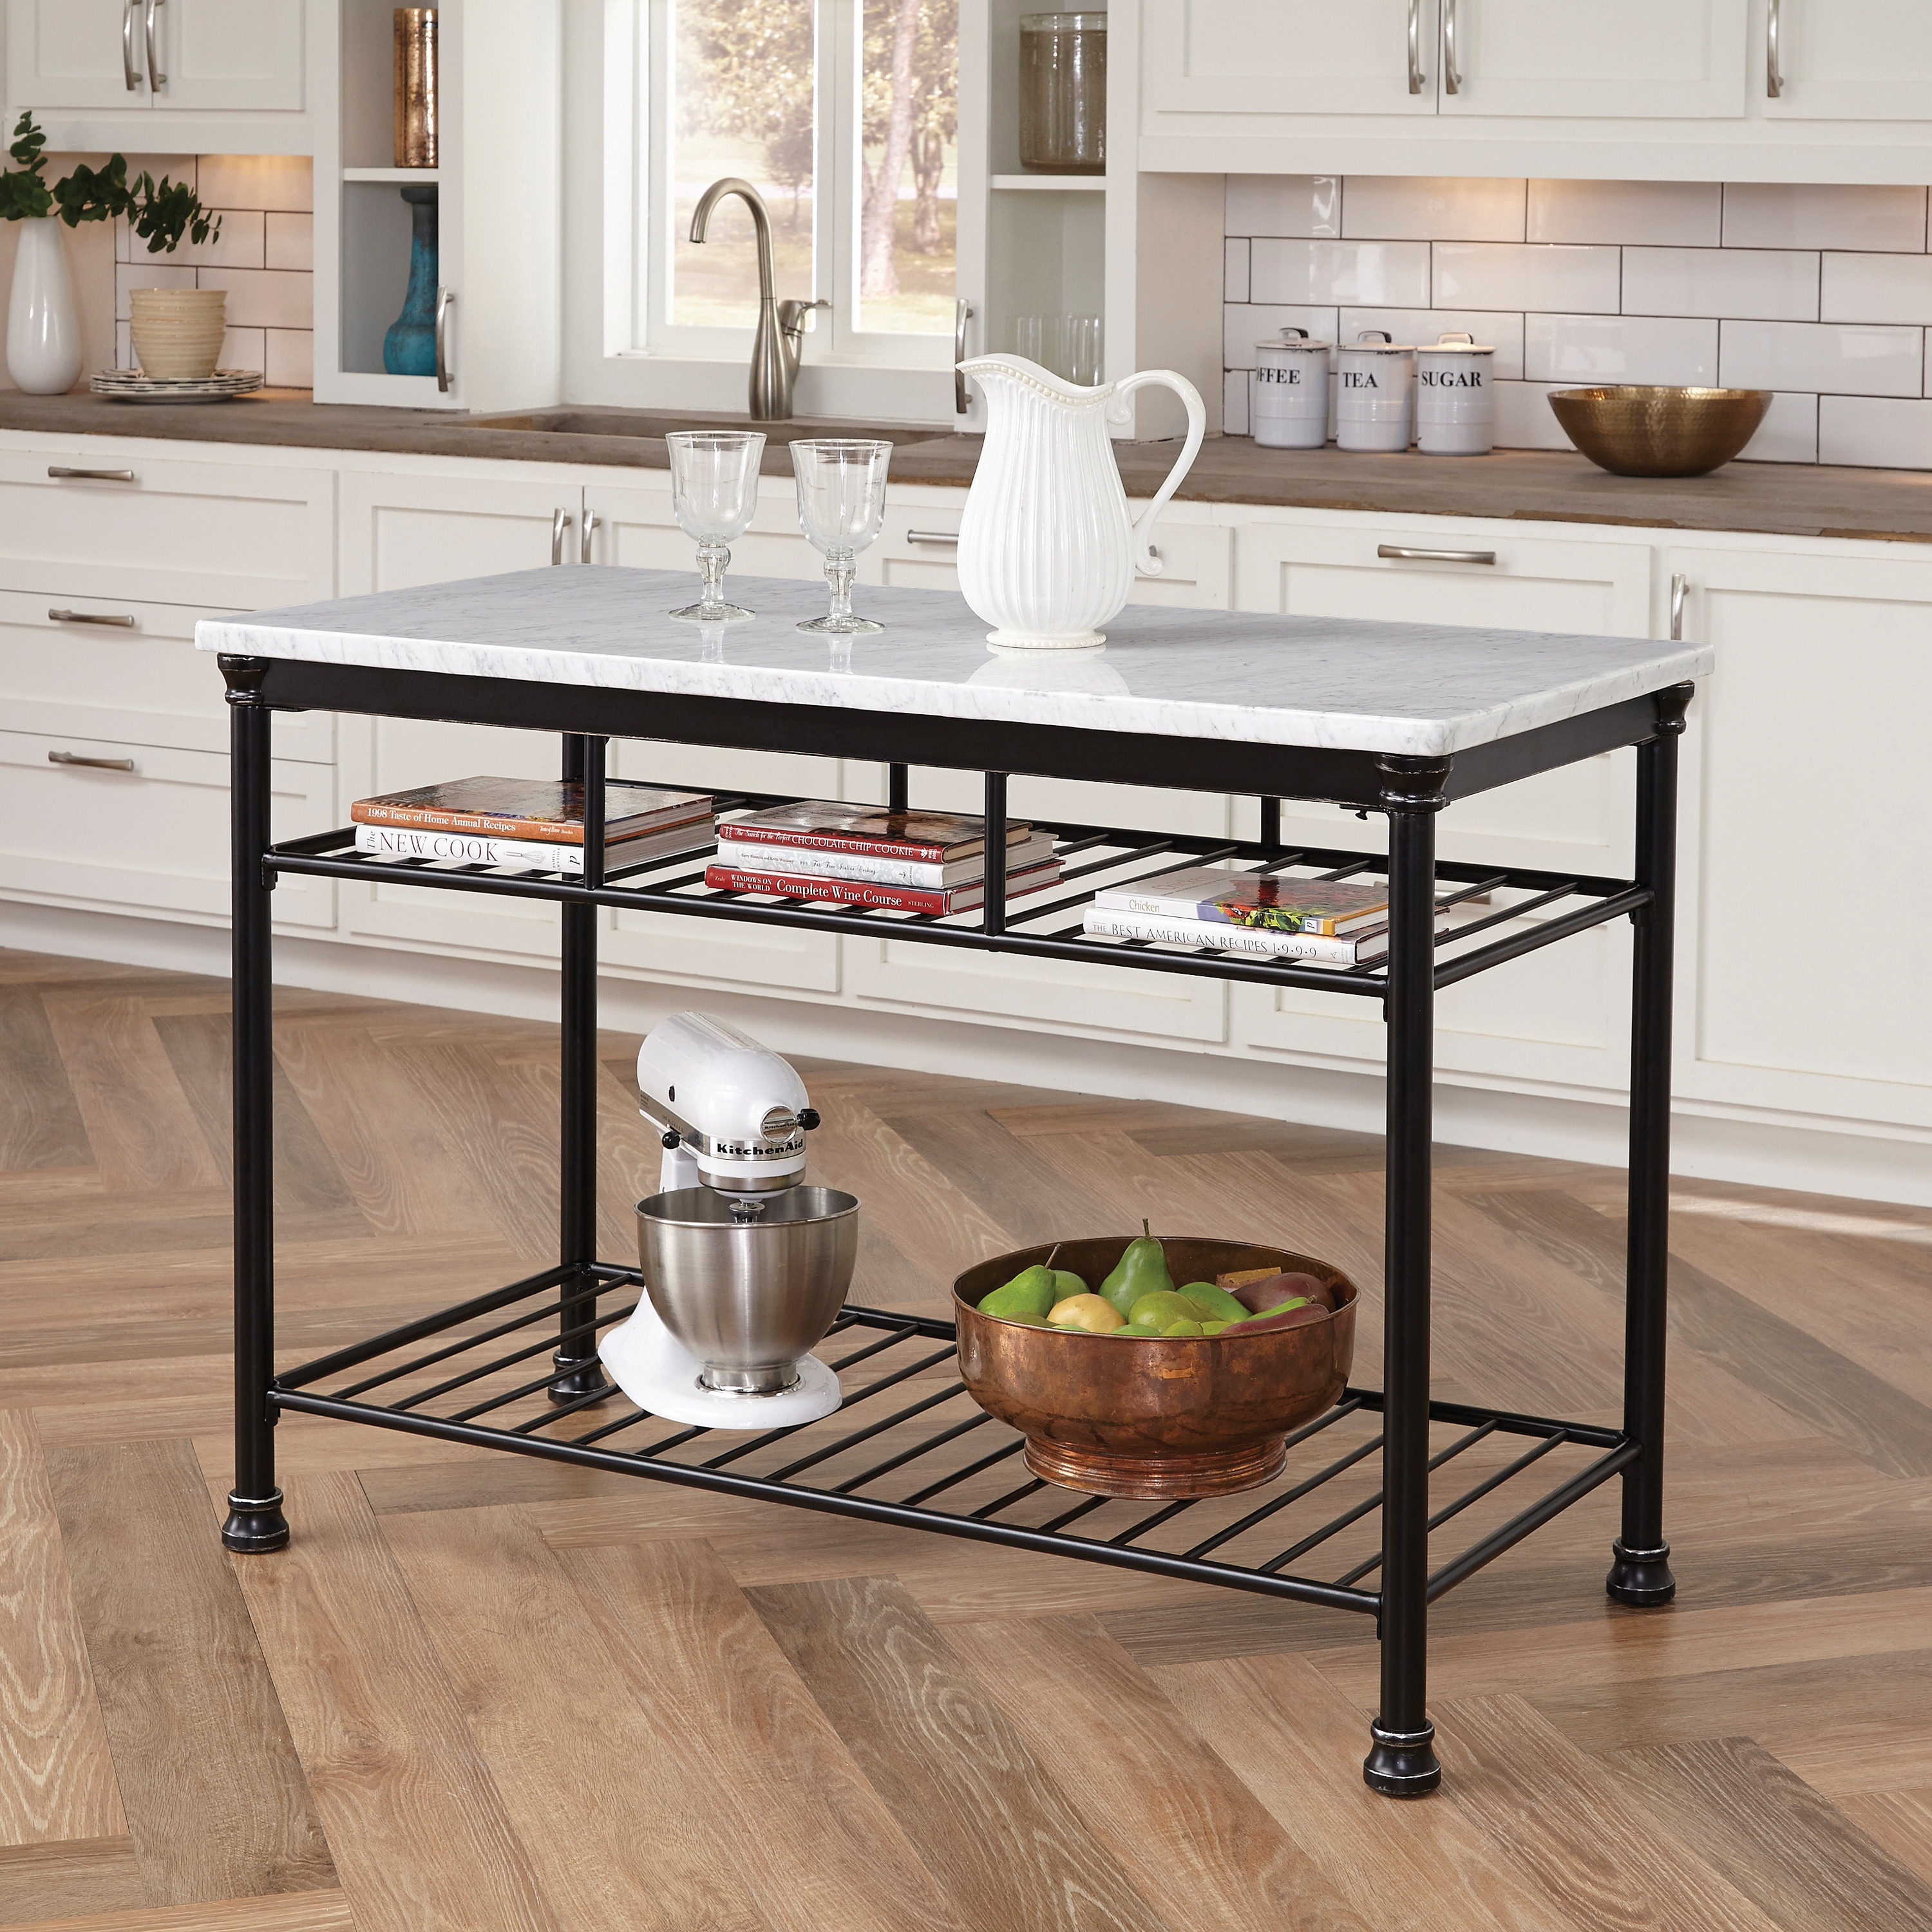 The Gray Barn Cranberry Field Kitchen Island